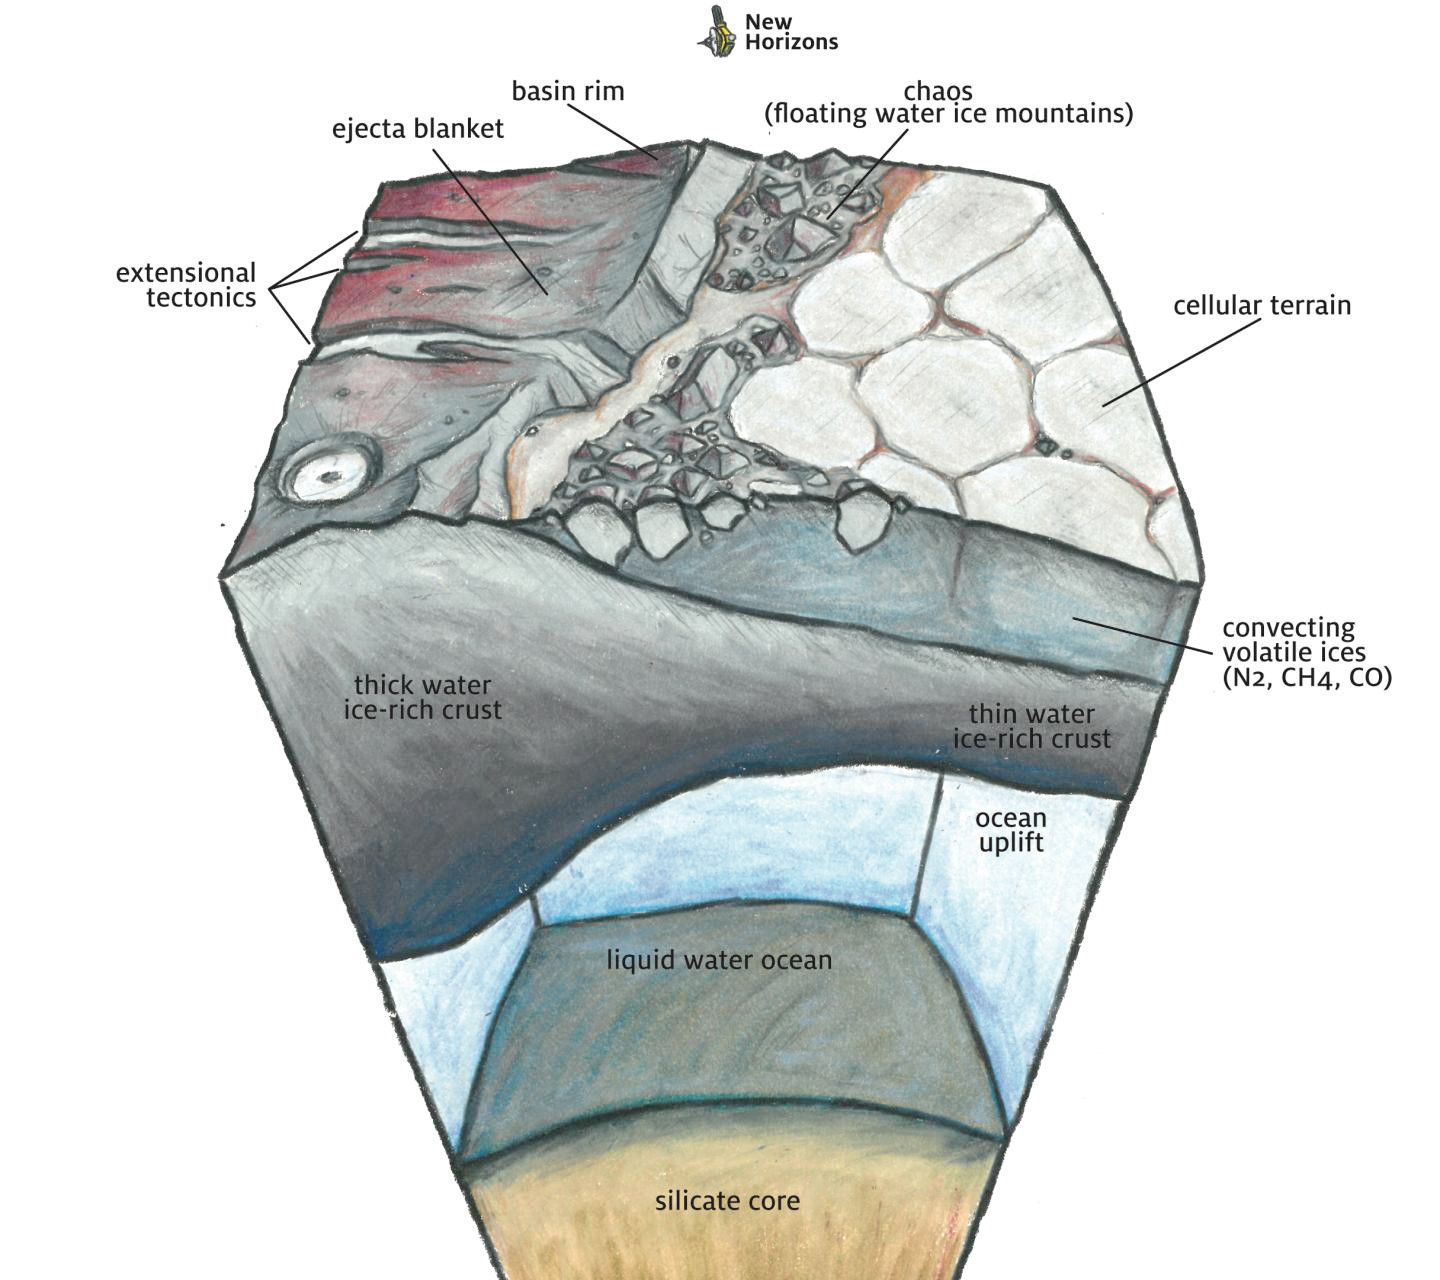 The geologic structure beneath the surface of Sputnik Planitia, which is believed to be an ancient impact basin that has since filled in with volatile ices. On Pluto, it is possible that the thinned crust is overlying a liquid water ocean. Click image for a larger-scale version. Illustration credit: James Keane.